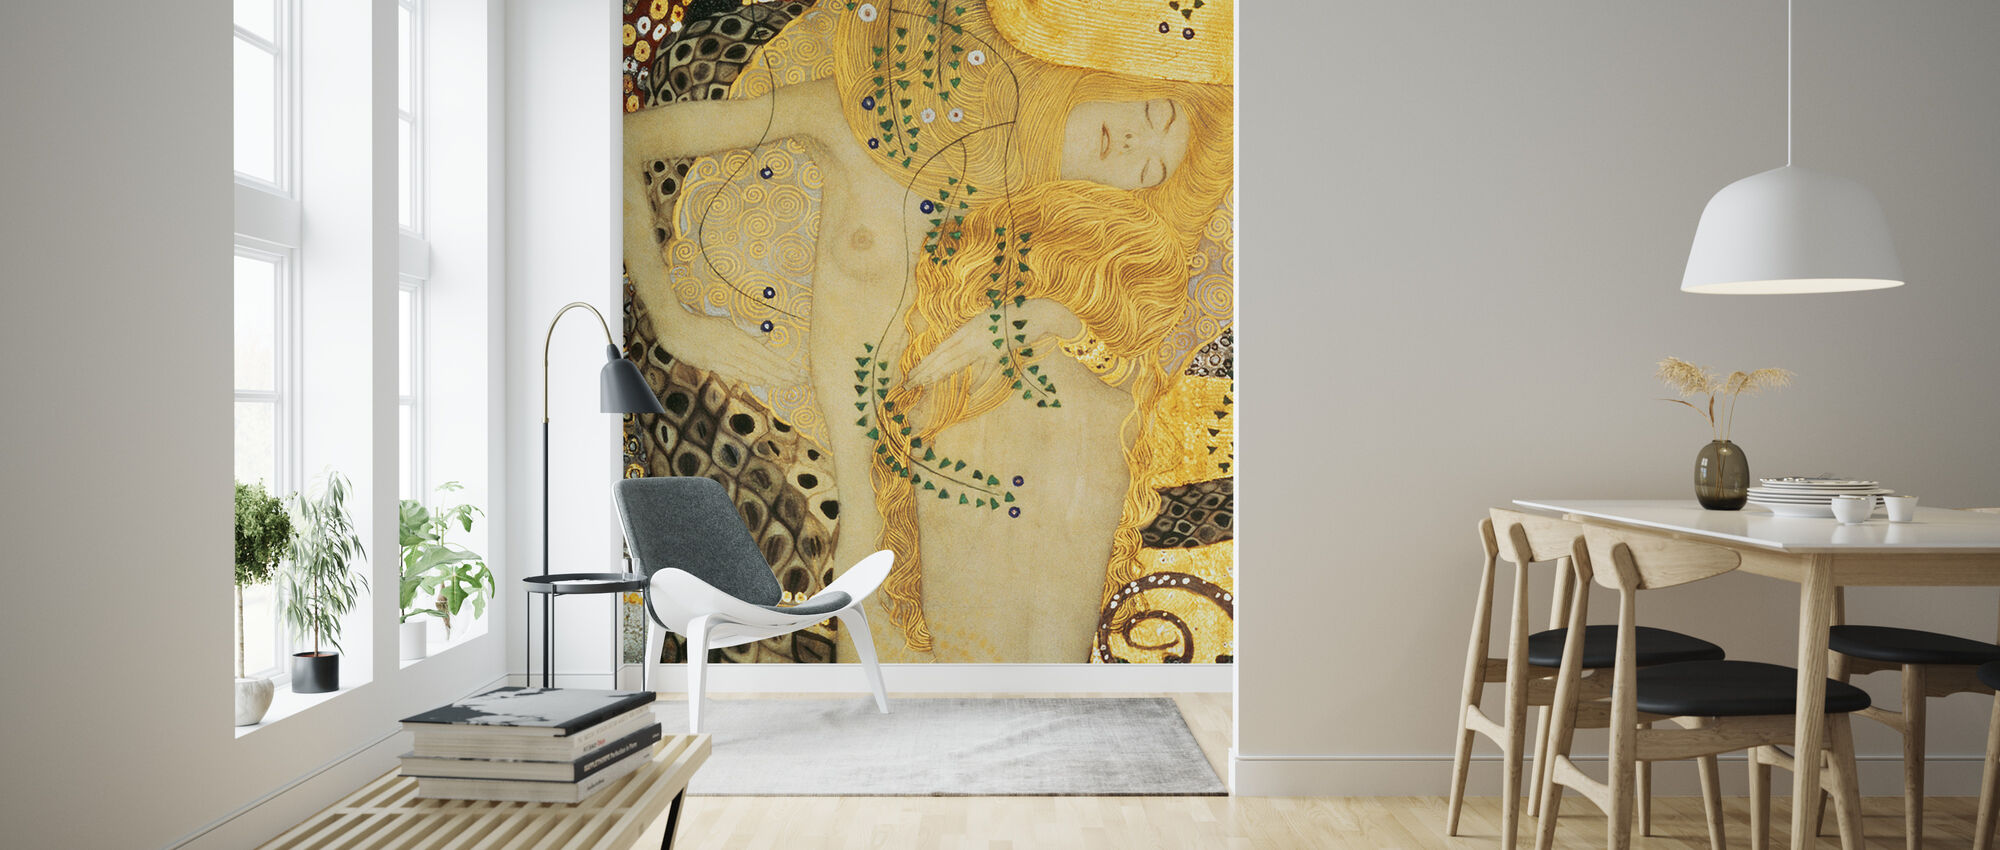 Water Serpents, Gustav Klimt - Wallpaper - Living Room